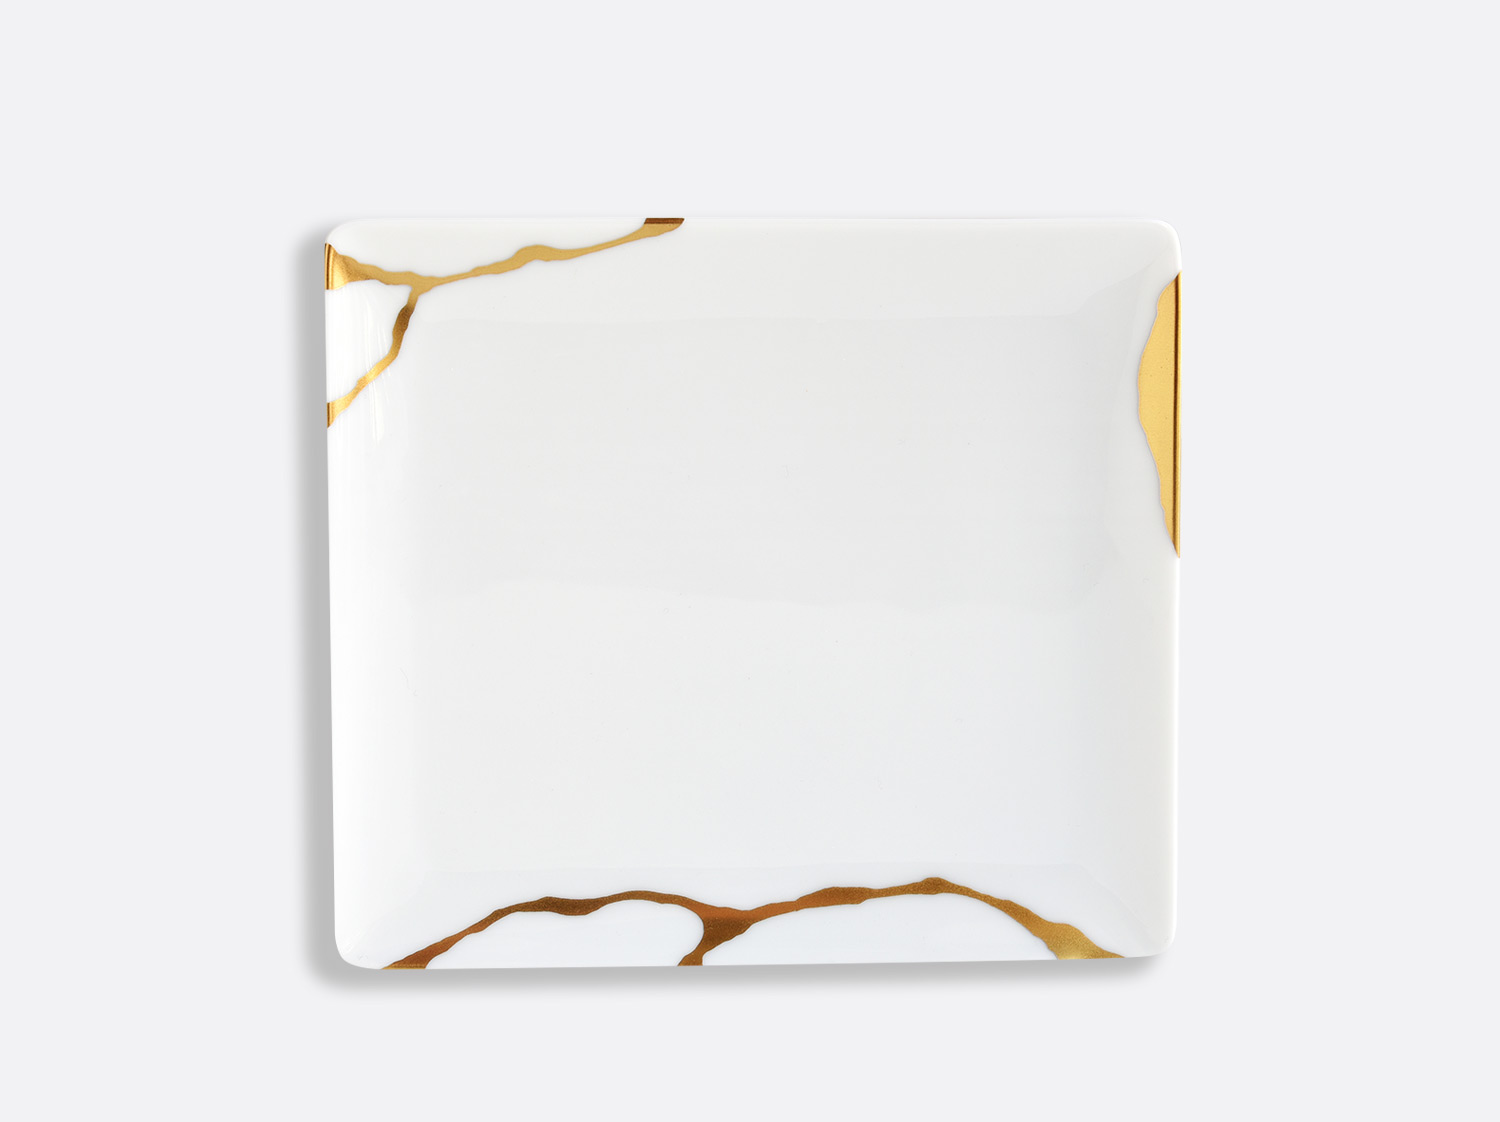 Plateau 17 x 15 cm en porcelaine de la collection Kintsugi Bernardaud